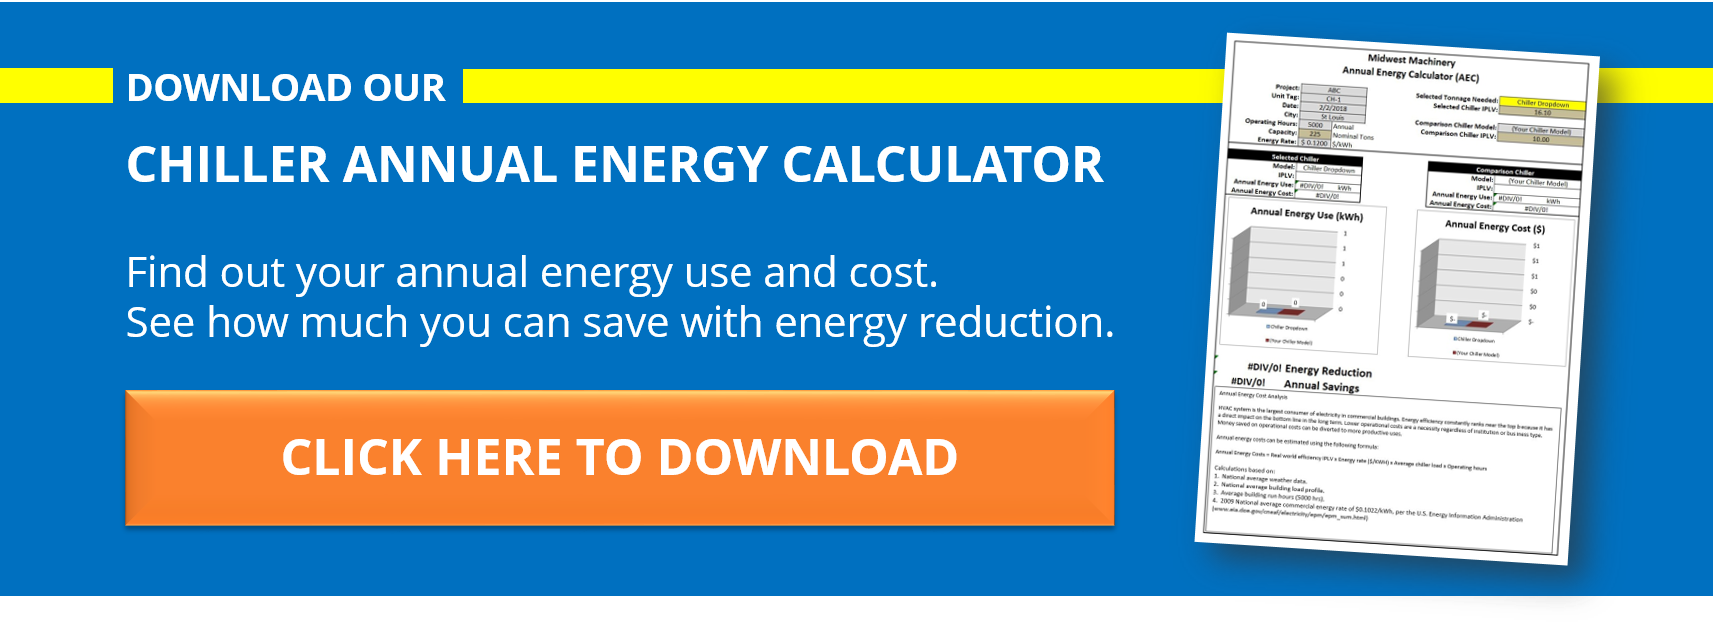 Click here to get our  Chiller Annual Energy Calculator